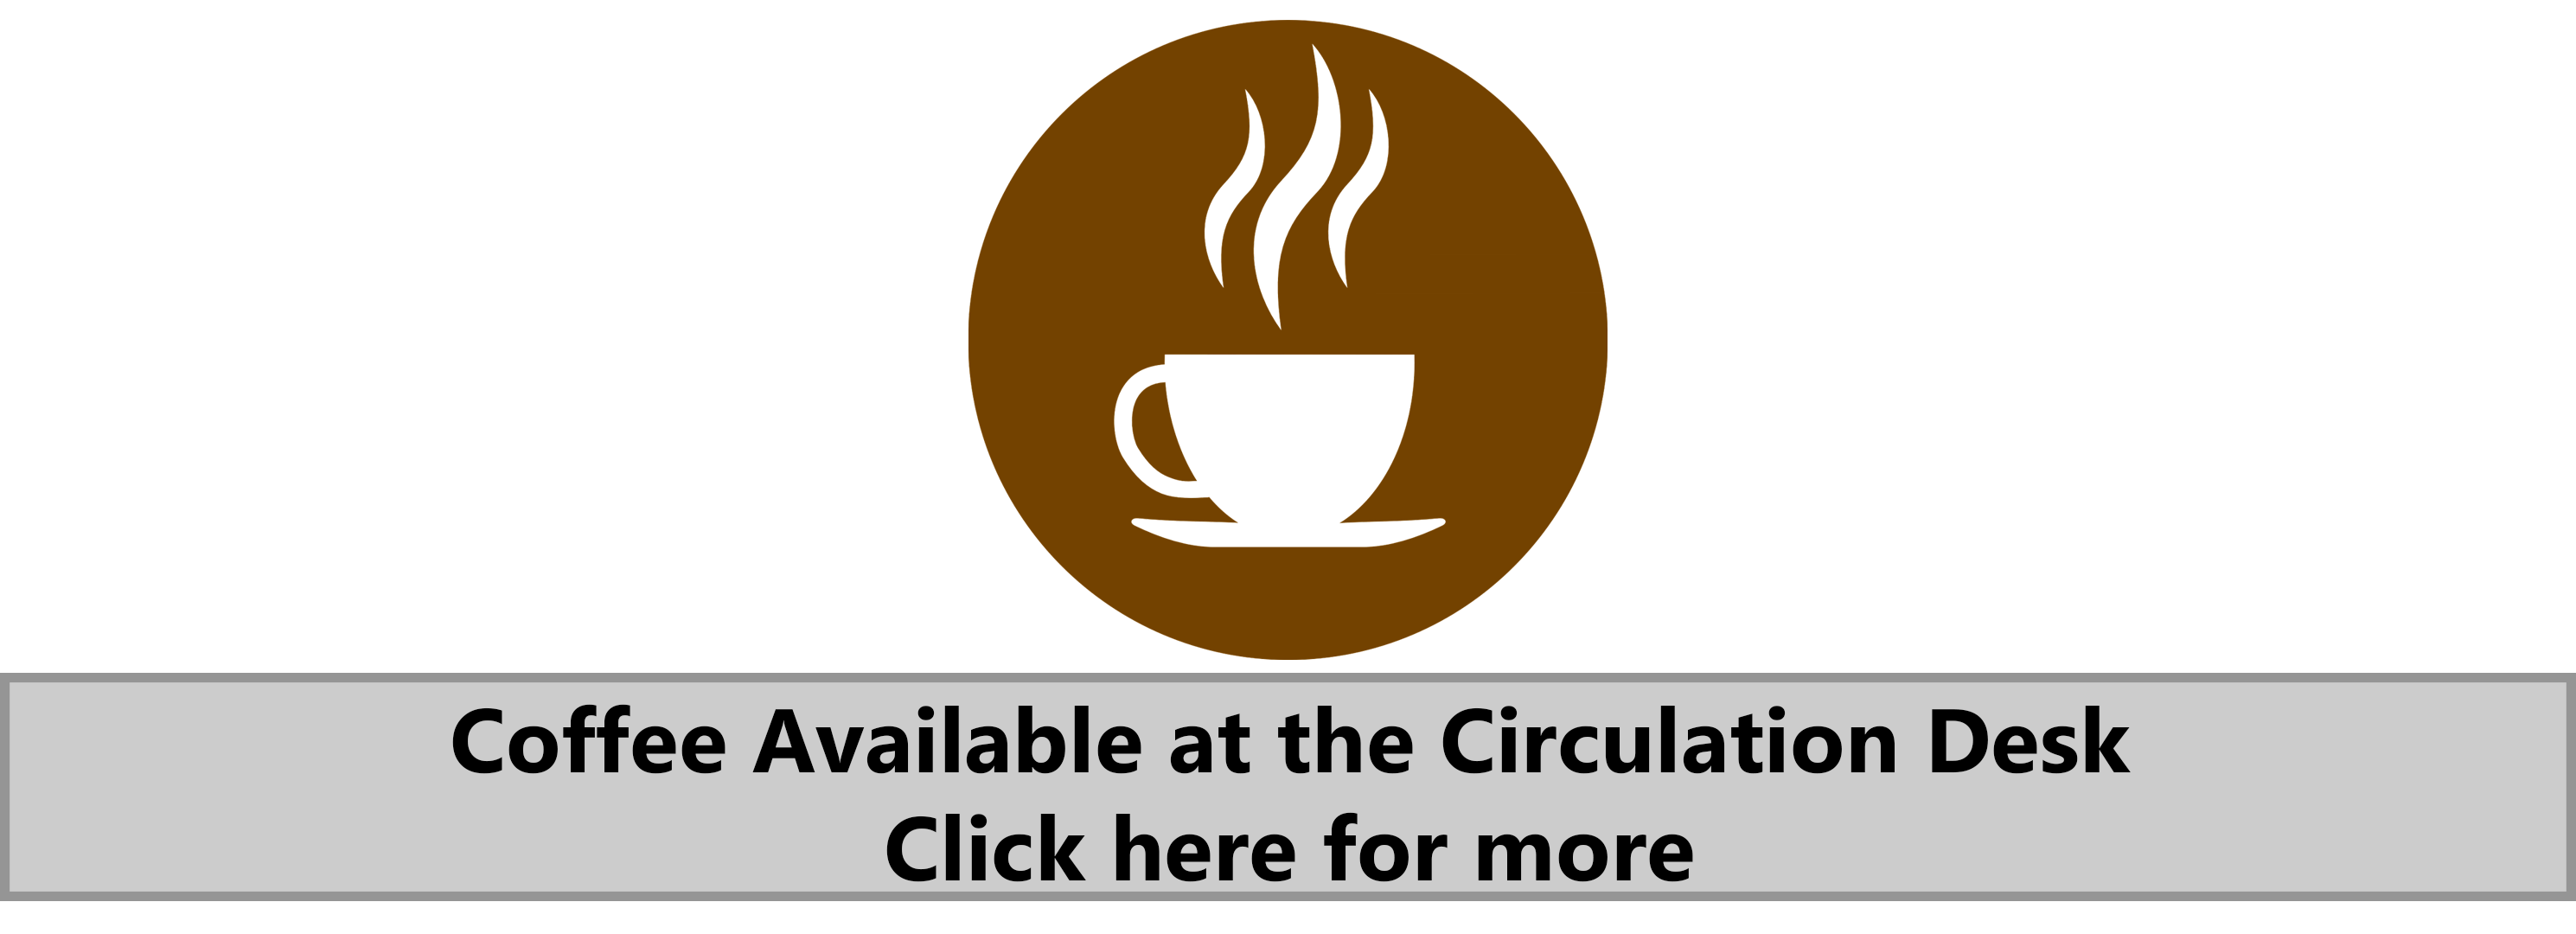 Coffee available at the Circulation Desk. Click here for more.